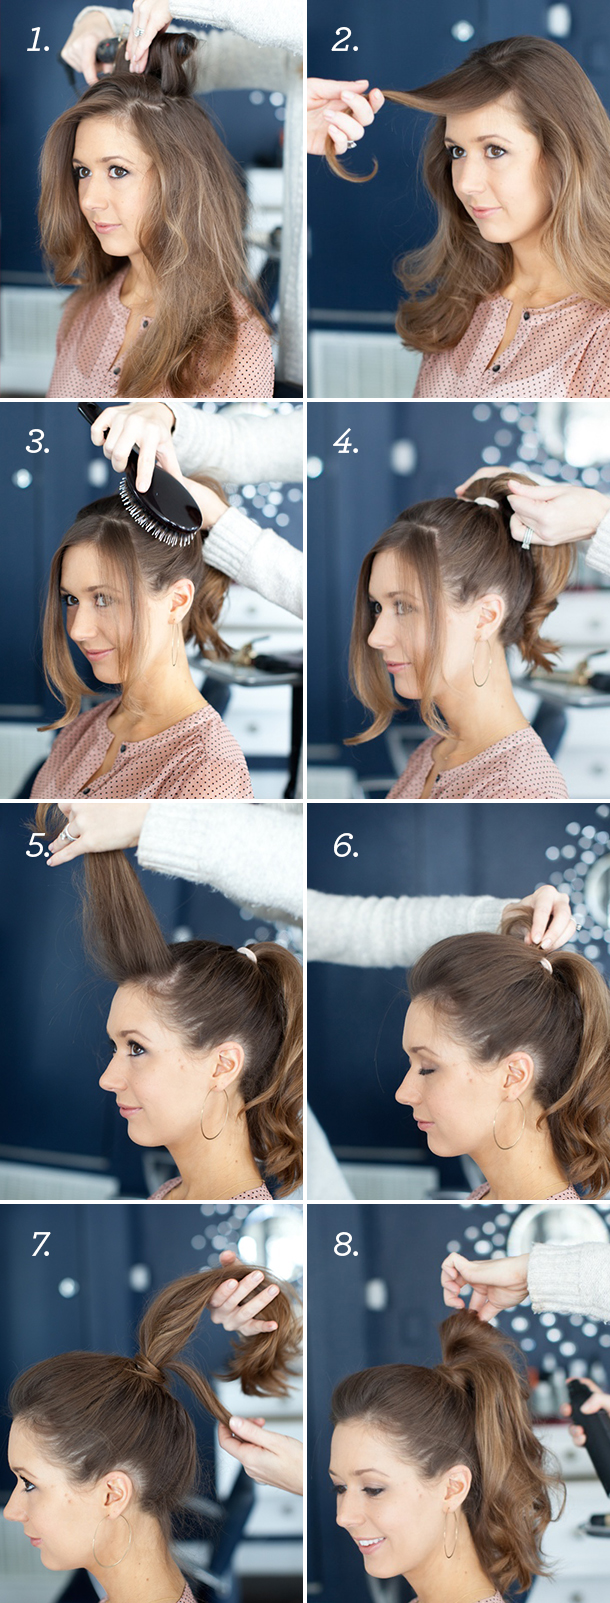 Pretty Simple Effortless High Pony Camille Styles